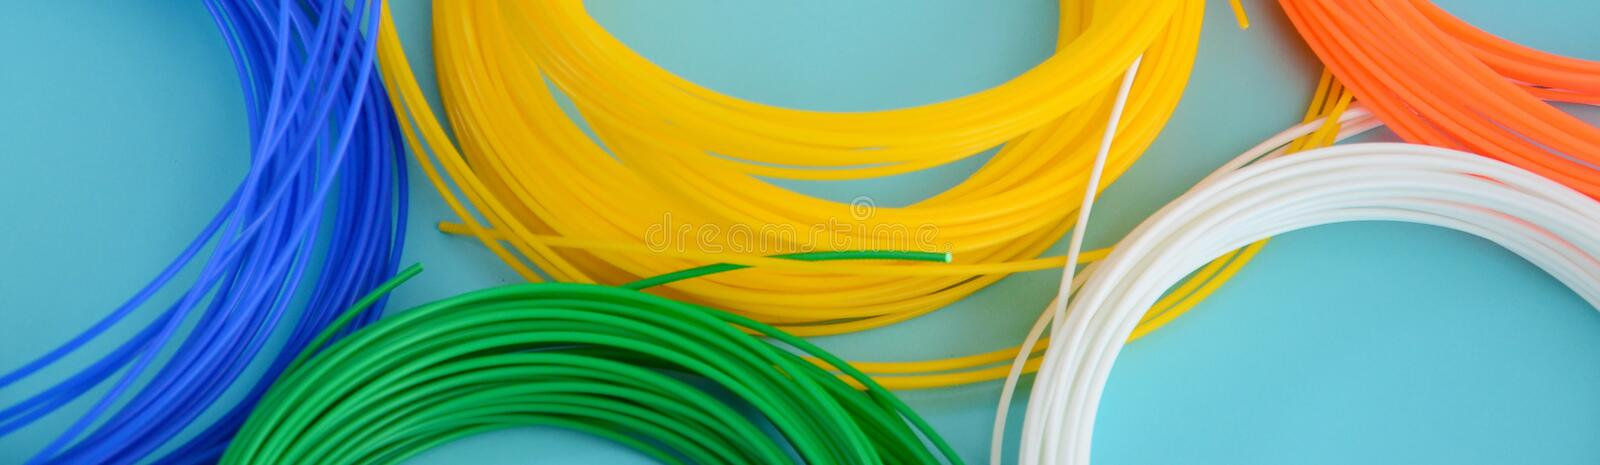 Plastic PLA and ABS filament material for printing on a 3D pen or printer of various colors stock photography